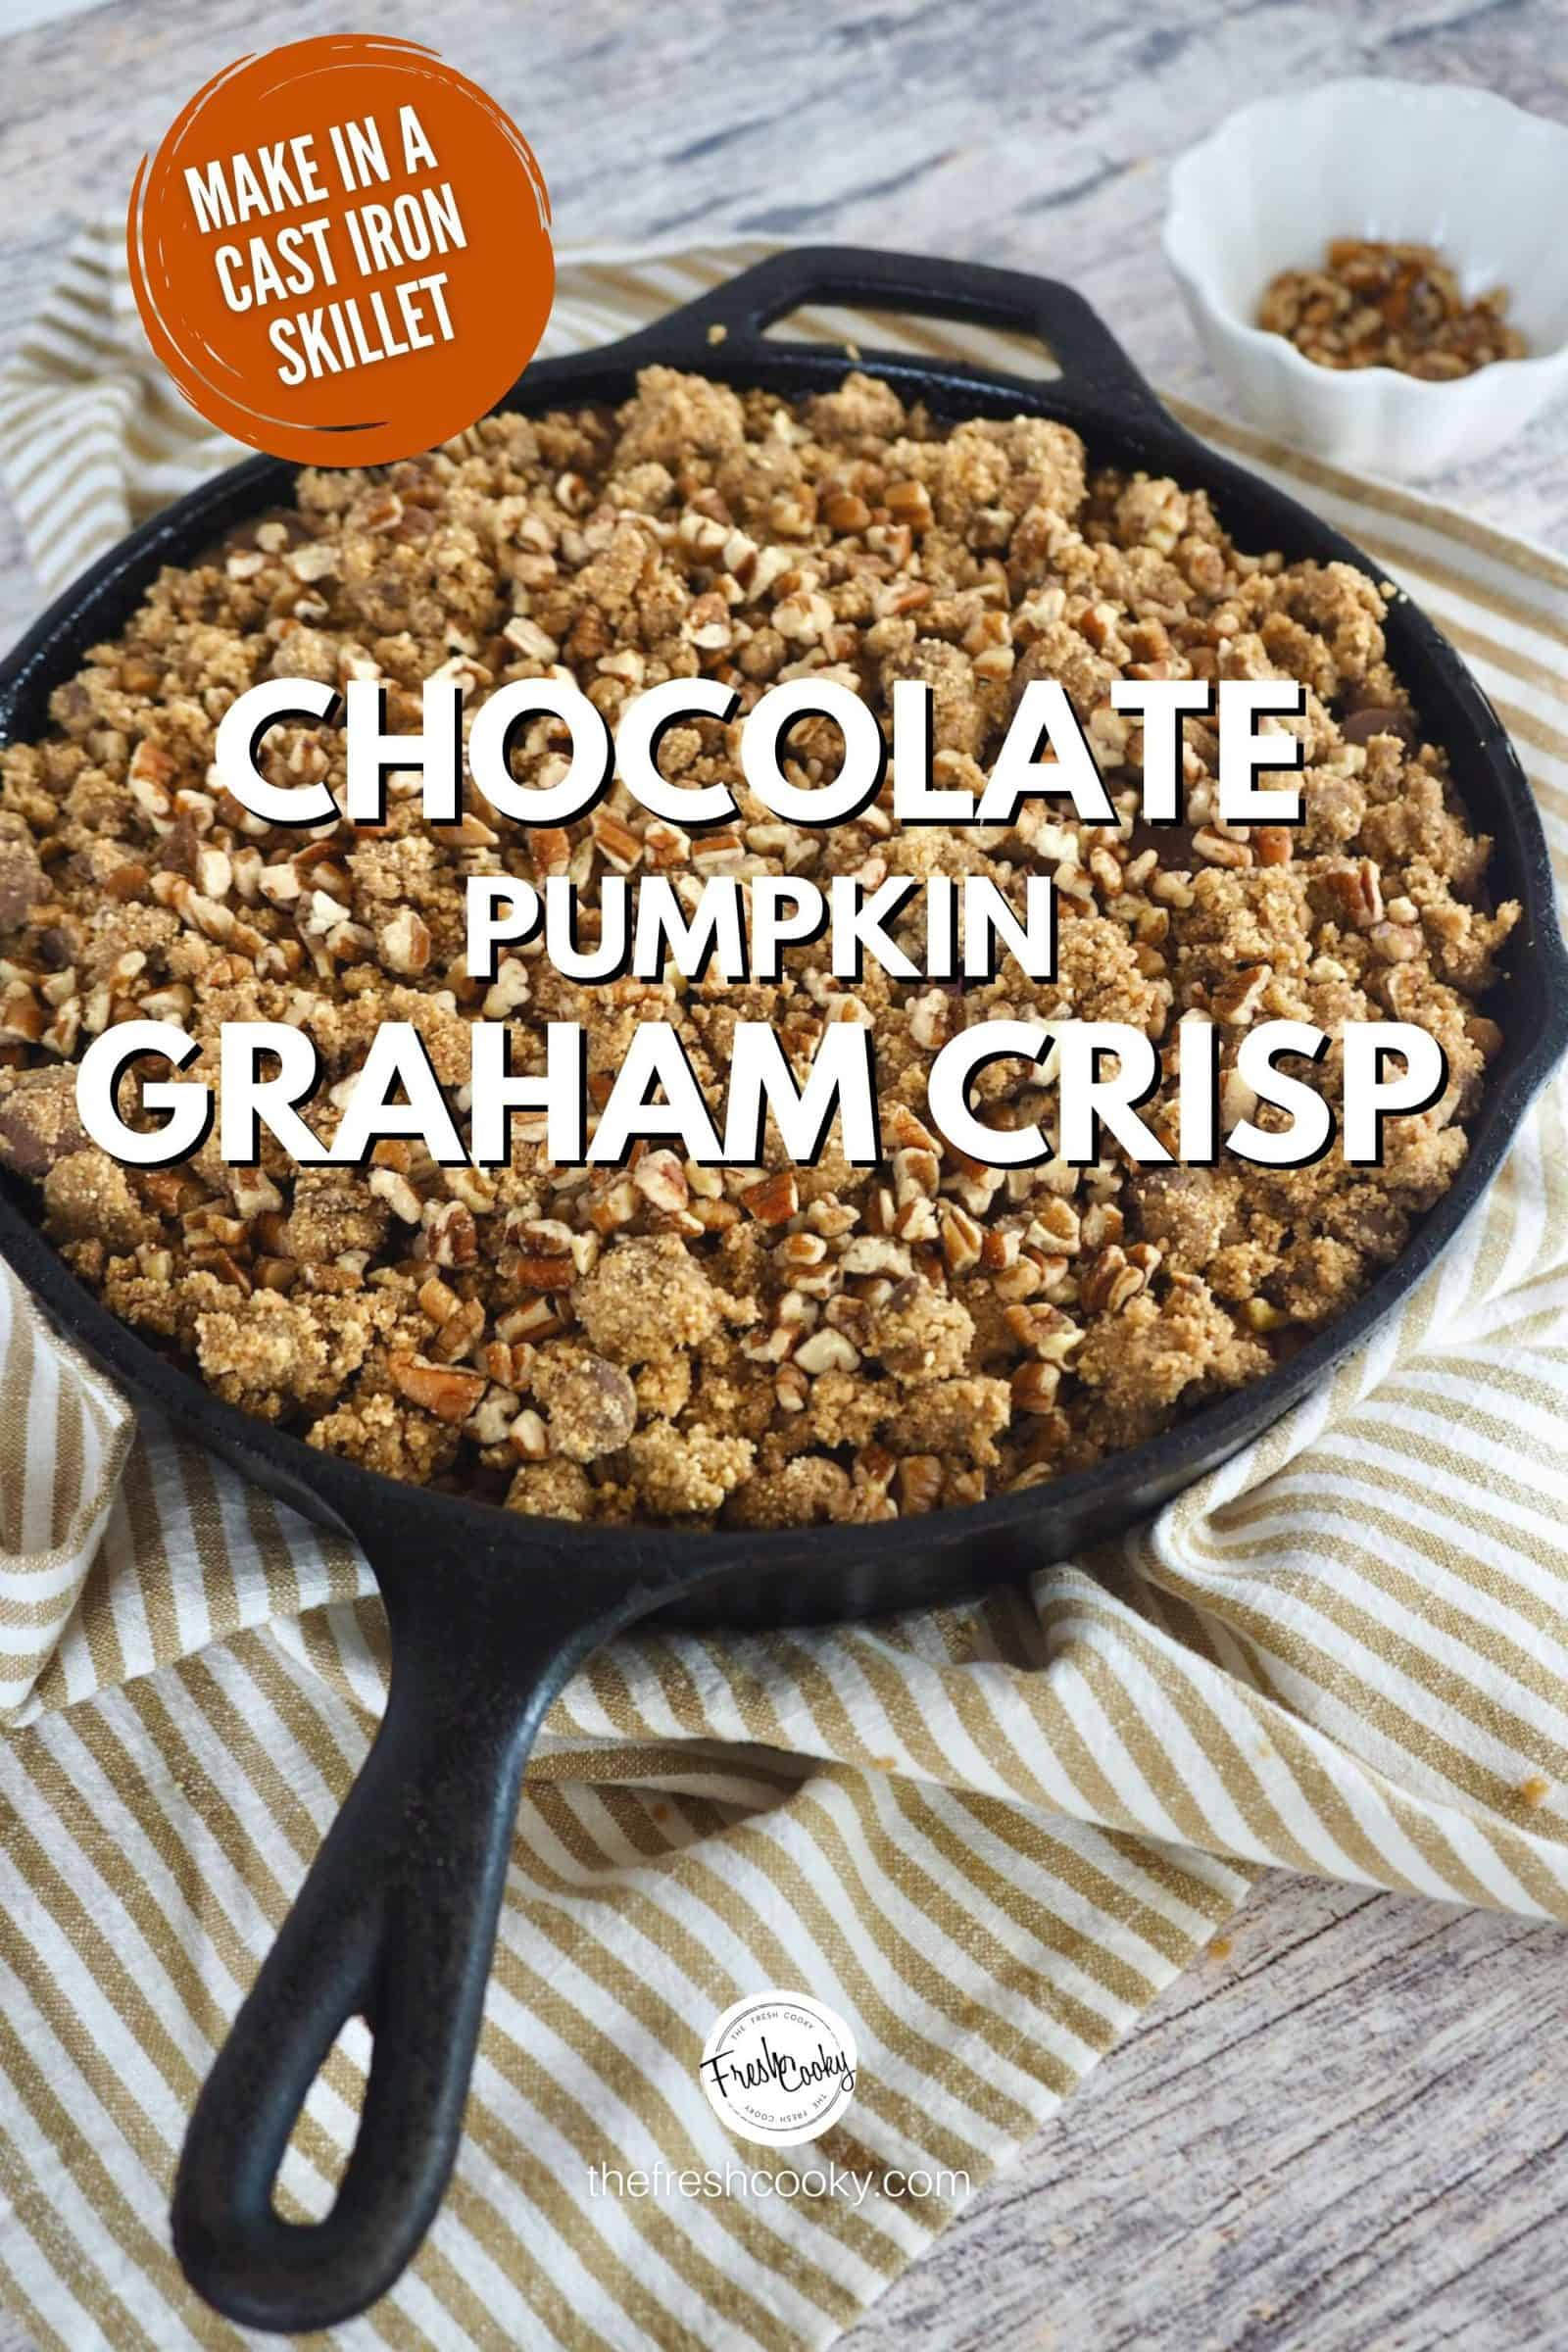 Chocolate Pumpkin Graham Crisp recipe from the cookie is a brand new fusion for all of you chocolate lovers out there! With a simple graham crisp topping, served warm with a scoop of ice cream for a delicious, make ahead holiday dessert. High altitude and gluten free adjustments included! #thefreshcooky #pumpkincrisp #bestholidaydesserts via @thefreshcooky